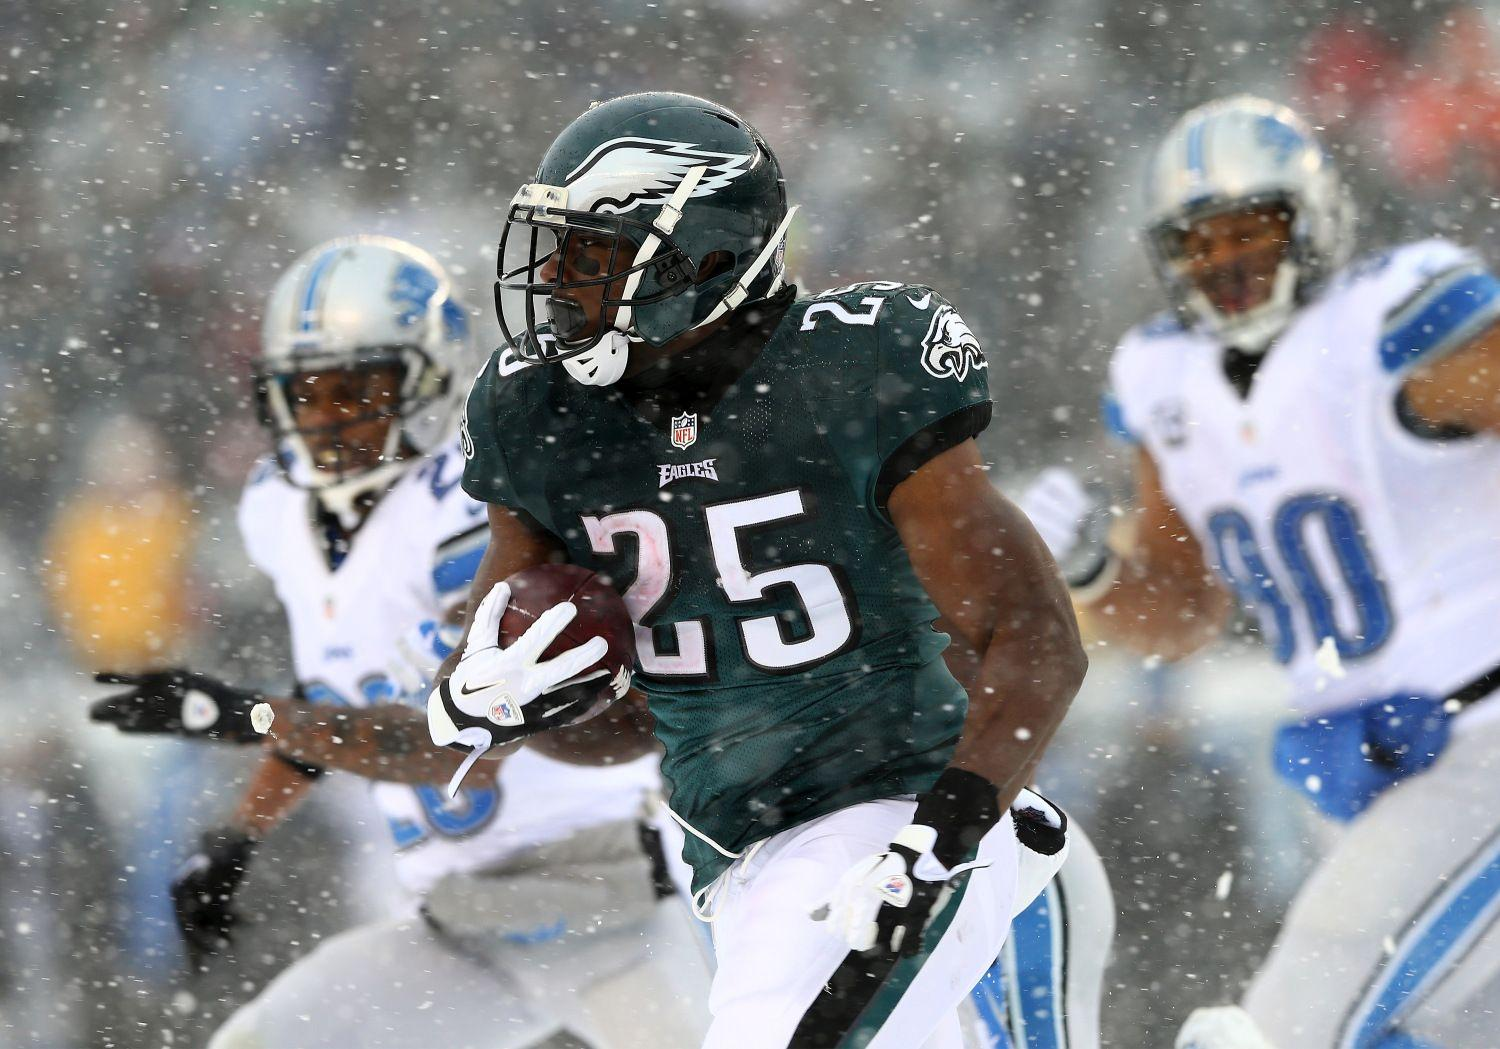 Top 20 NFL Fantasy Running Backs In 2014 « CBS Miami